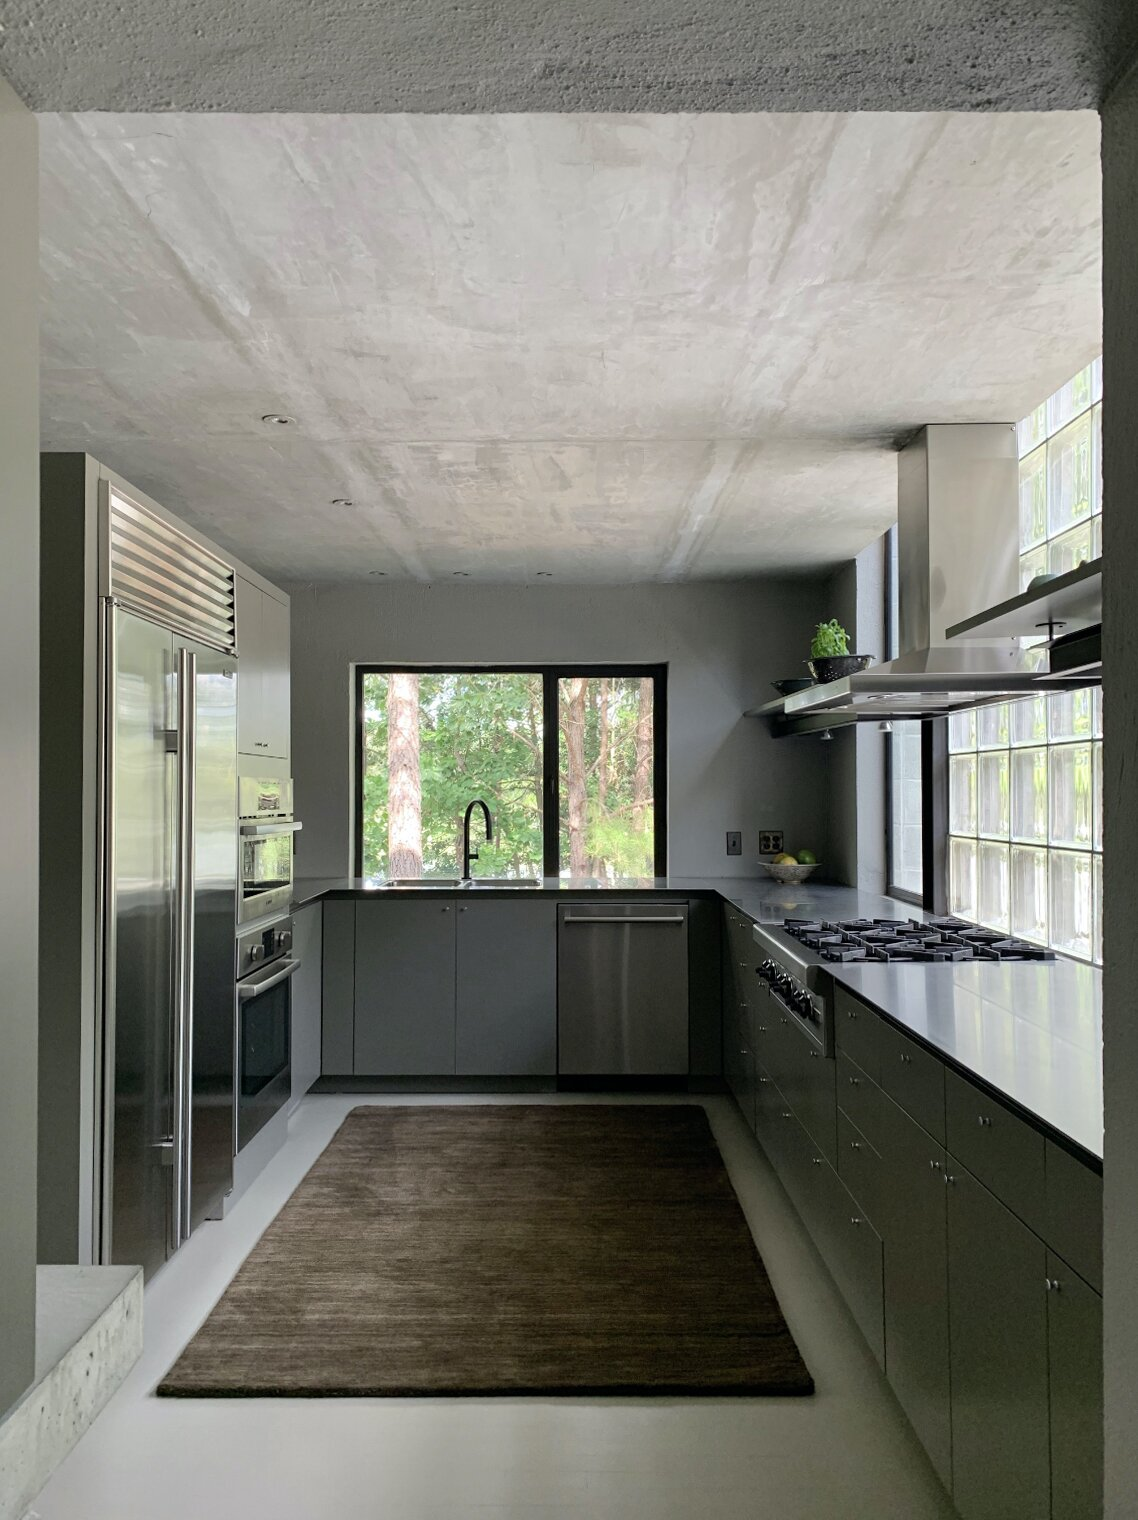 Behind the divider, the kitchen features Clark's original cabinetry and stainless steel countertops. The space also features updated appliances and a walk-in pantry.  Photo 6 of 12 in Surrounded by a Marshy Forest, This Fortress-Like Home Asks $1.7M in Virginia